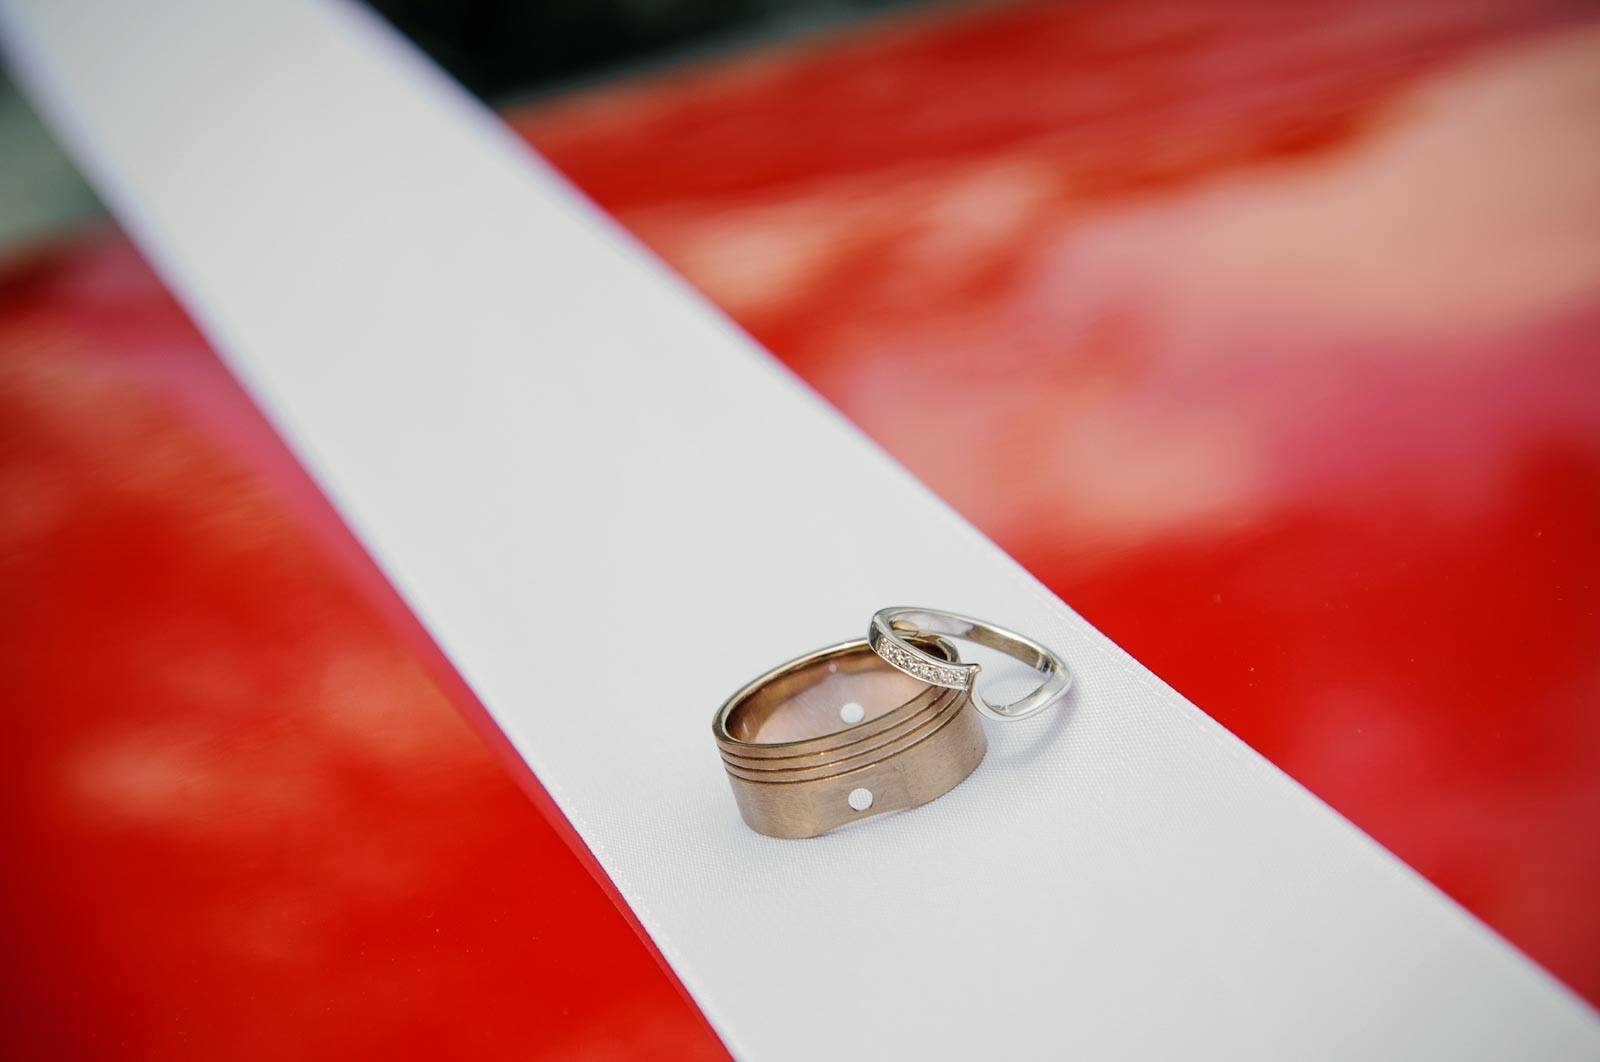 18ct White gold his and hers wedding rings.